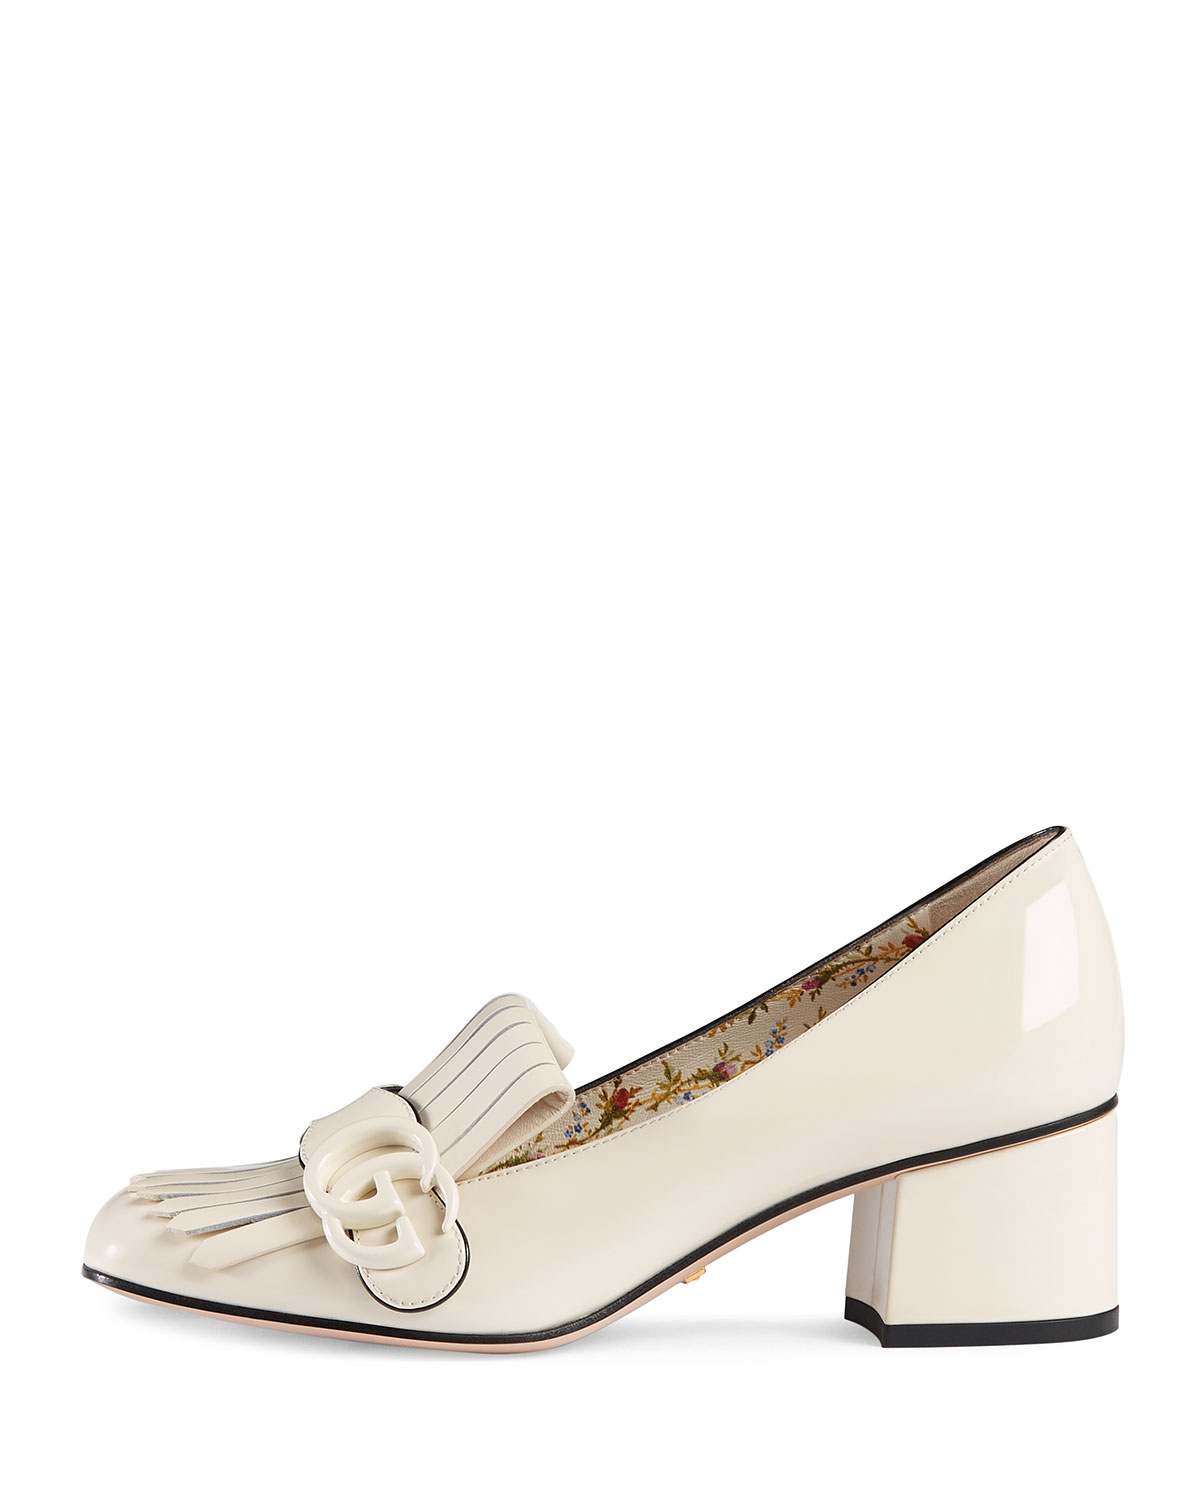 2785f3d41 Gucci Marmont Patent Loafer Pump, White | Neiman Marcus